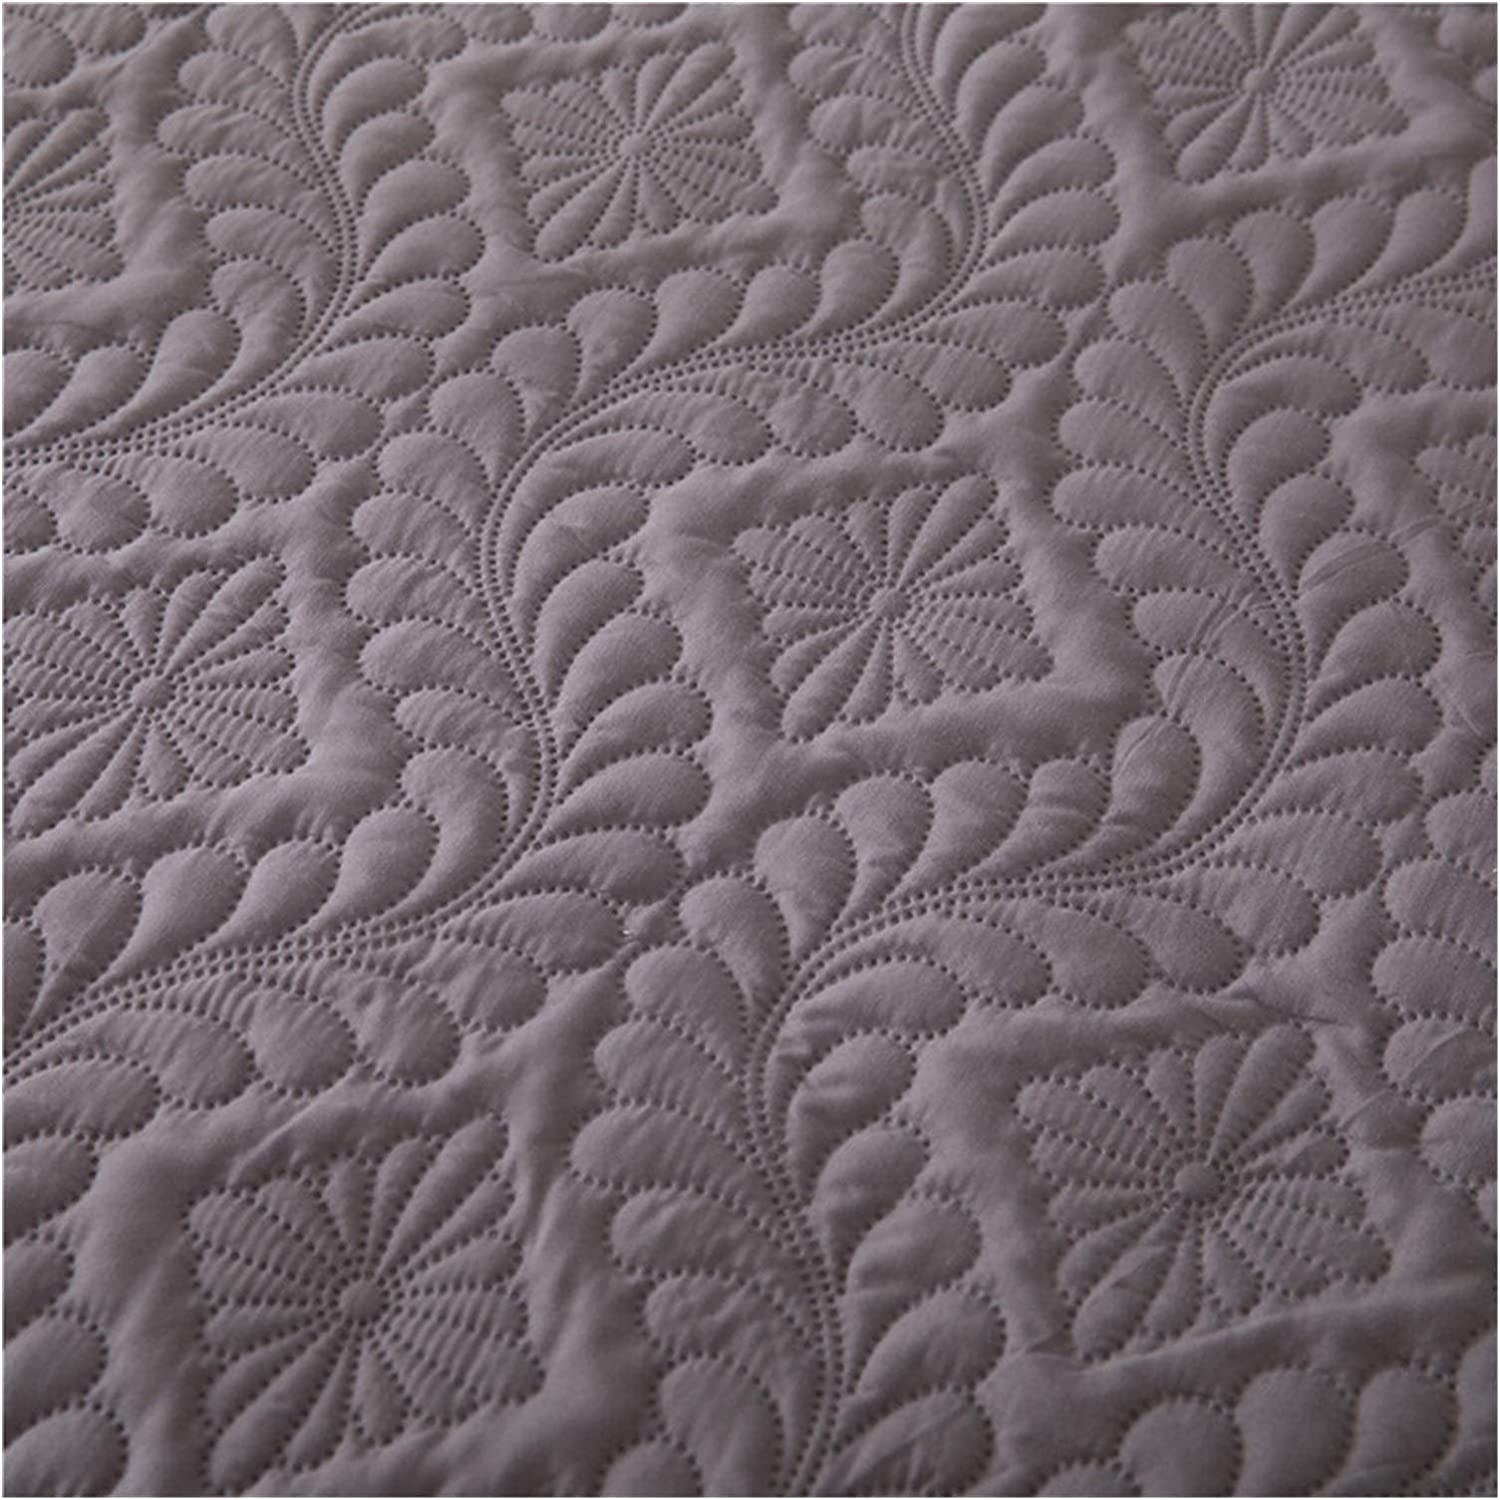 Fitted supreme Bed Sheet Sheets Mattress Embossed Monochrome Protect Time sale